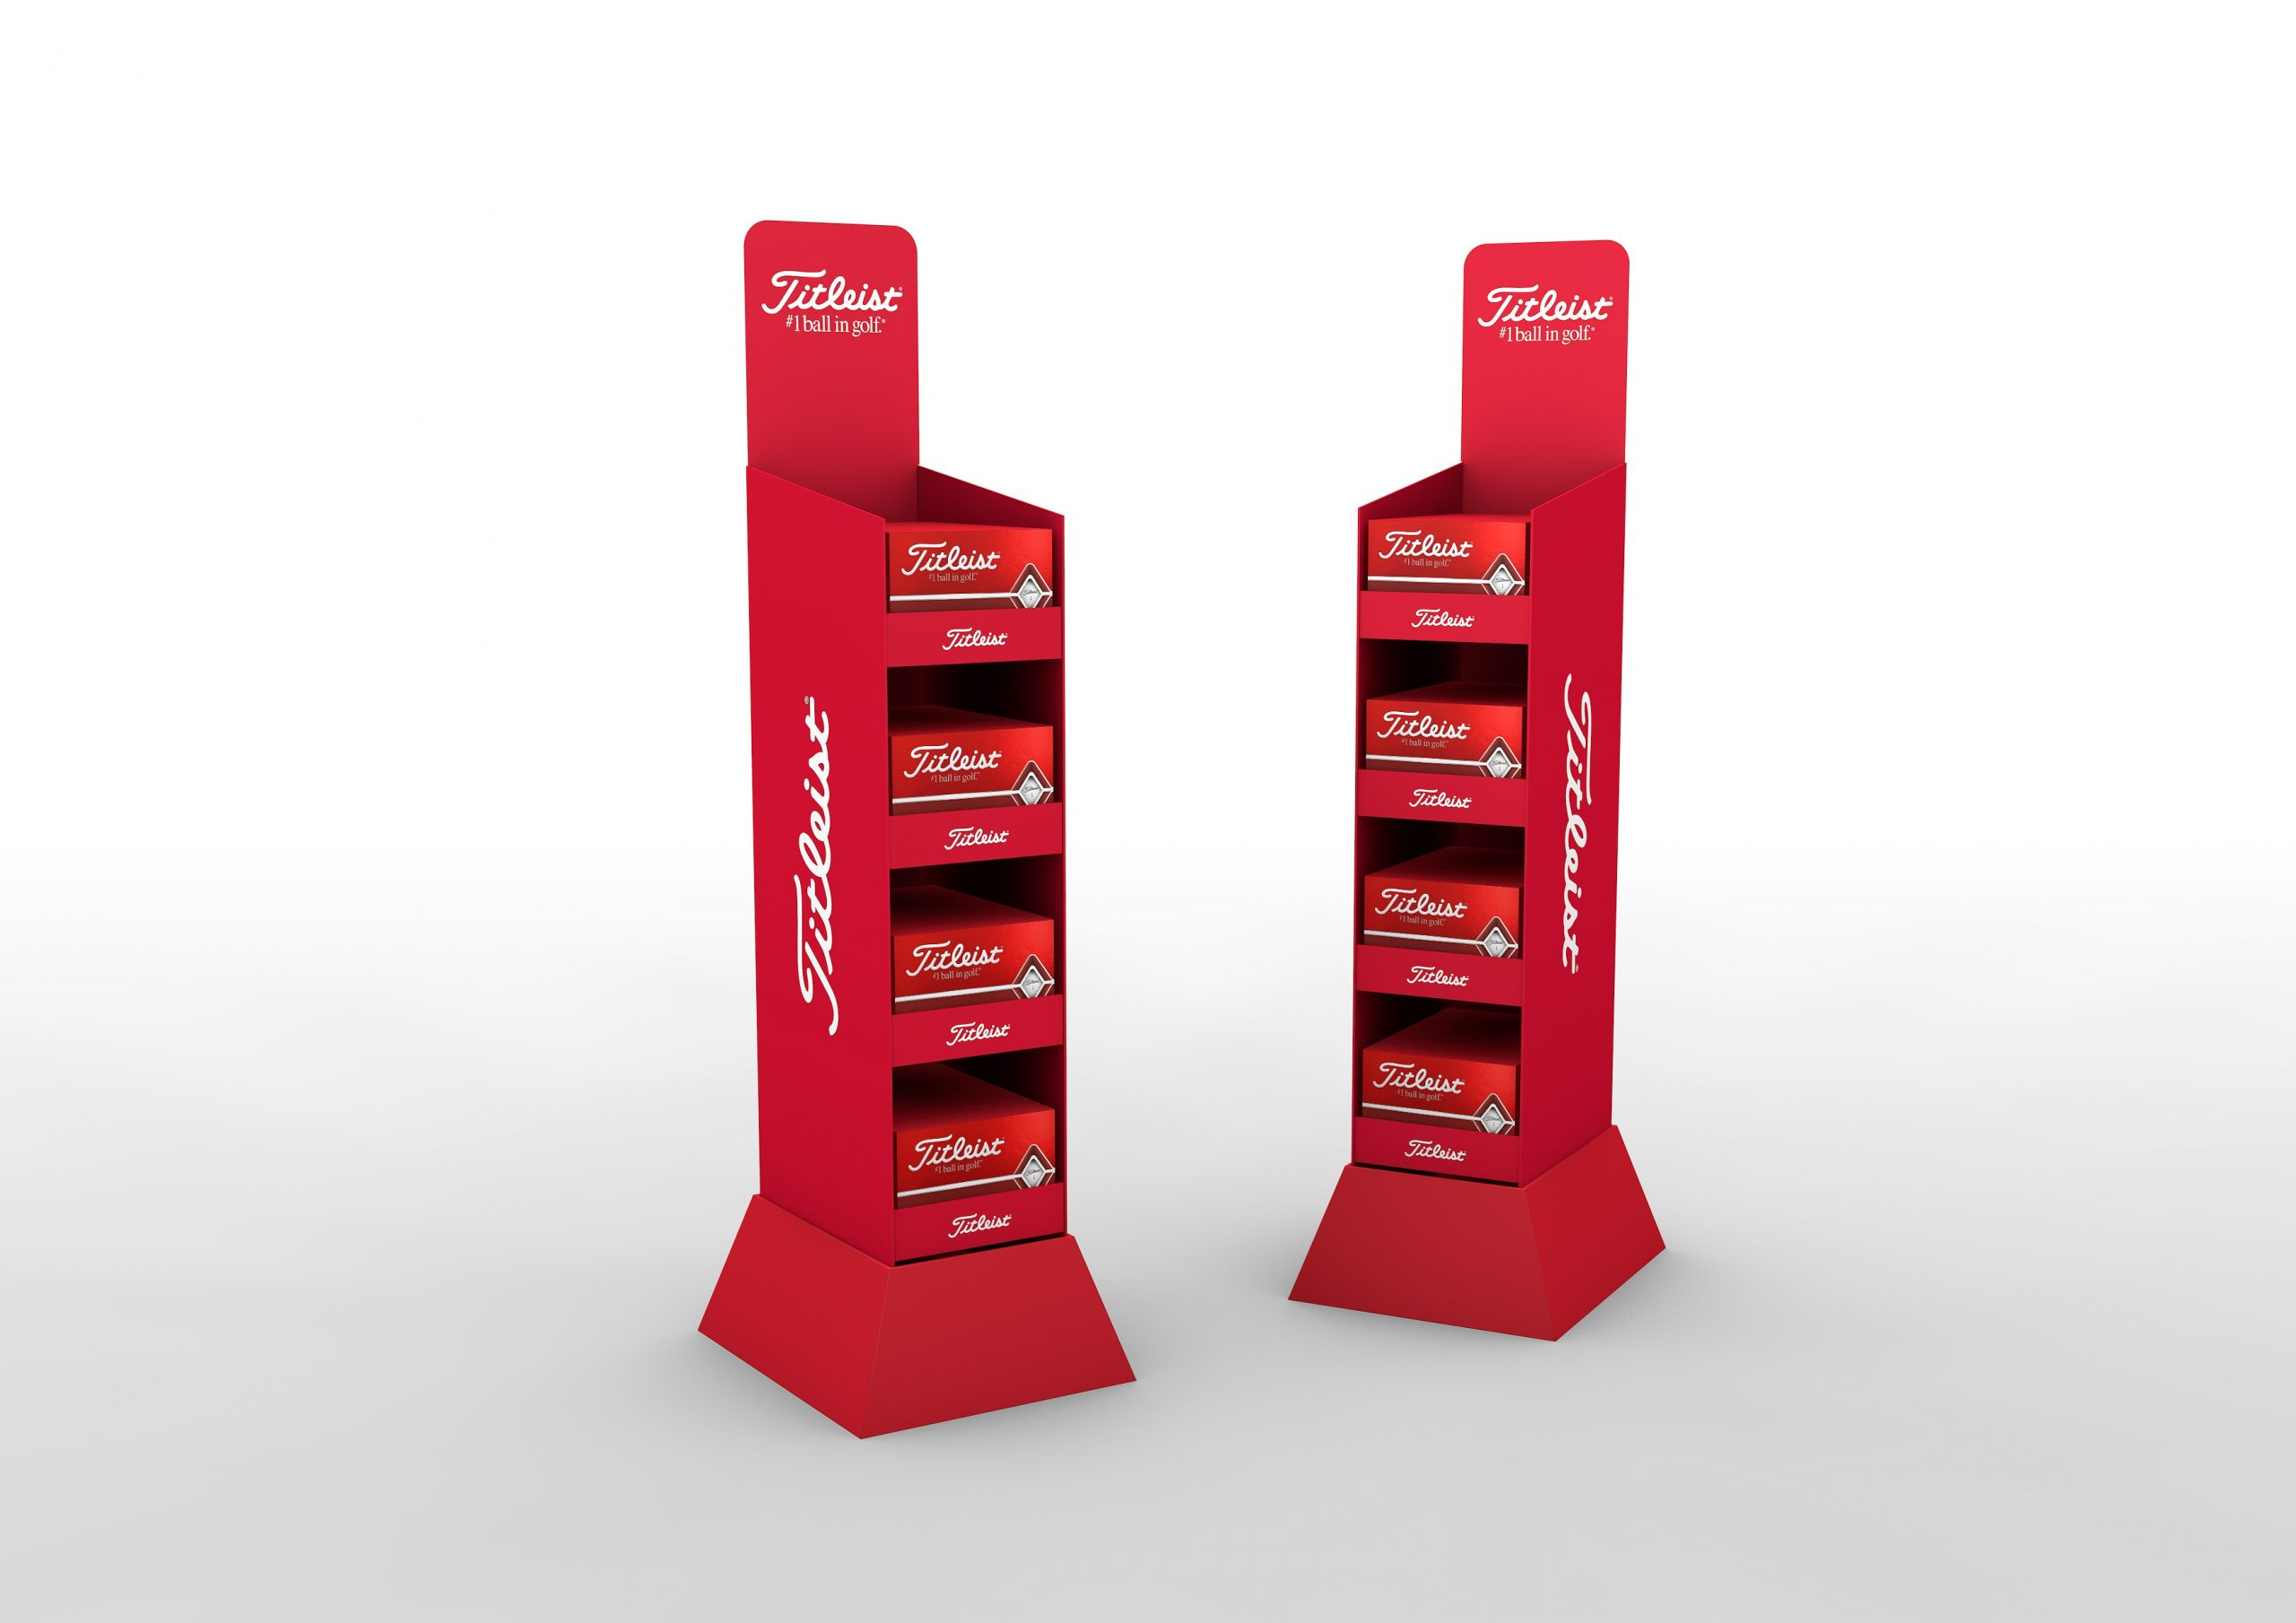 Cardboard Point of Sale Retail